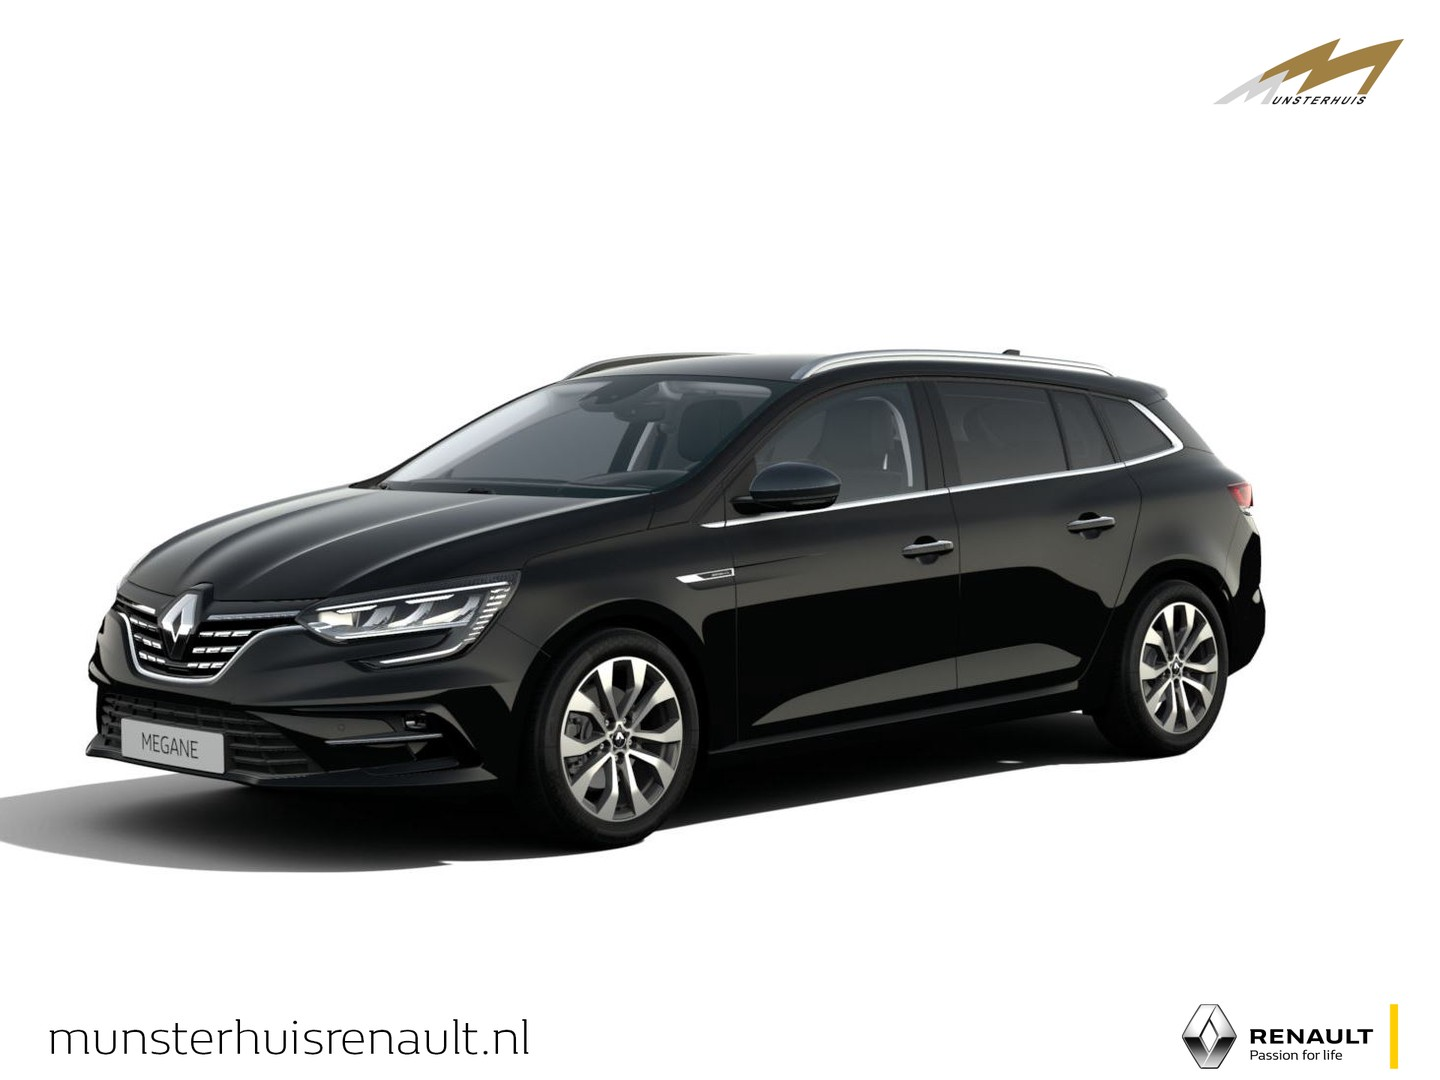 Renault Mégane Estate business edition one* tce 160 edc  - nieuw - automaat -